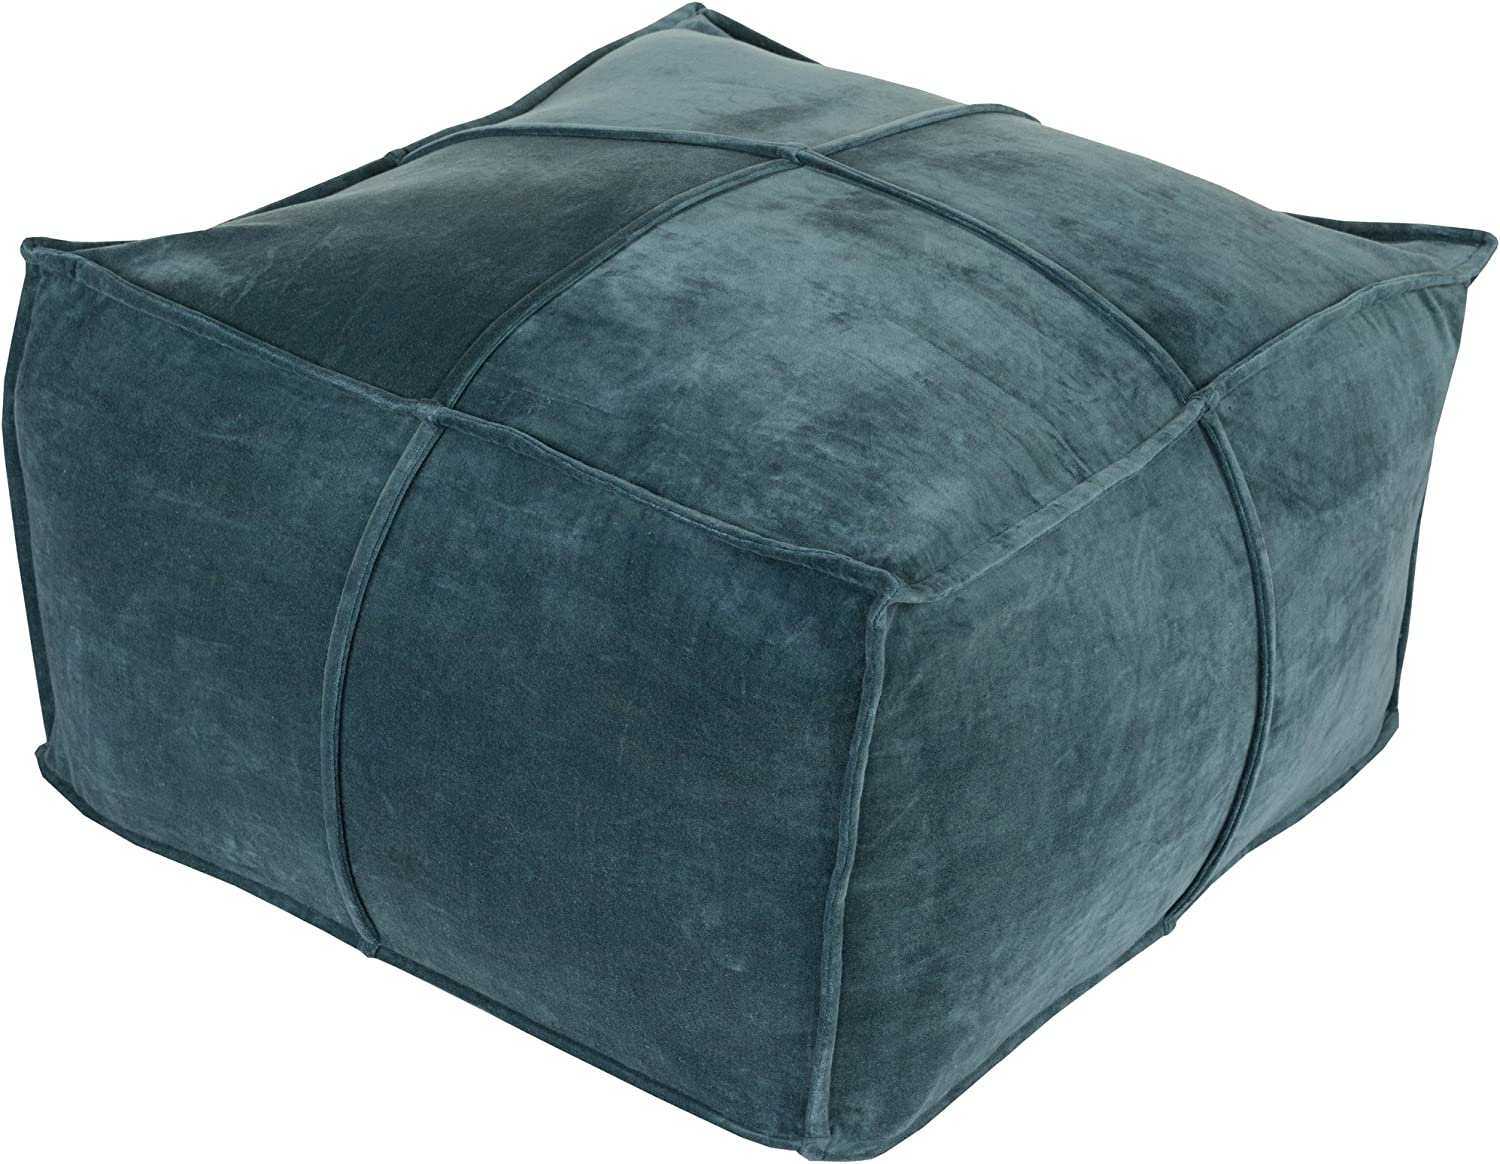 Surya 100-Percent Cotton Velvet Pouf, 24-Inch by 24-Inch by 13-Inch, Teal